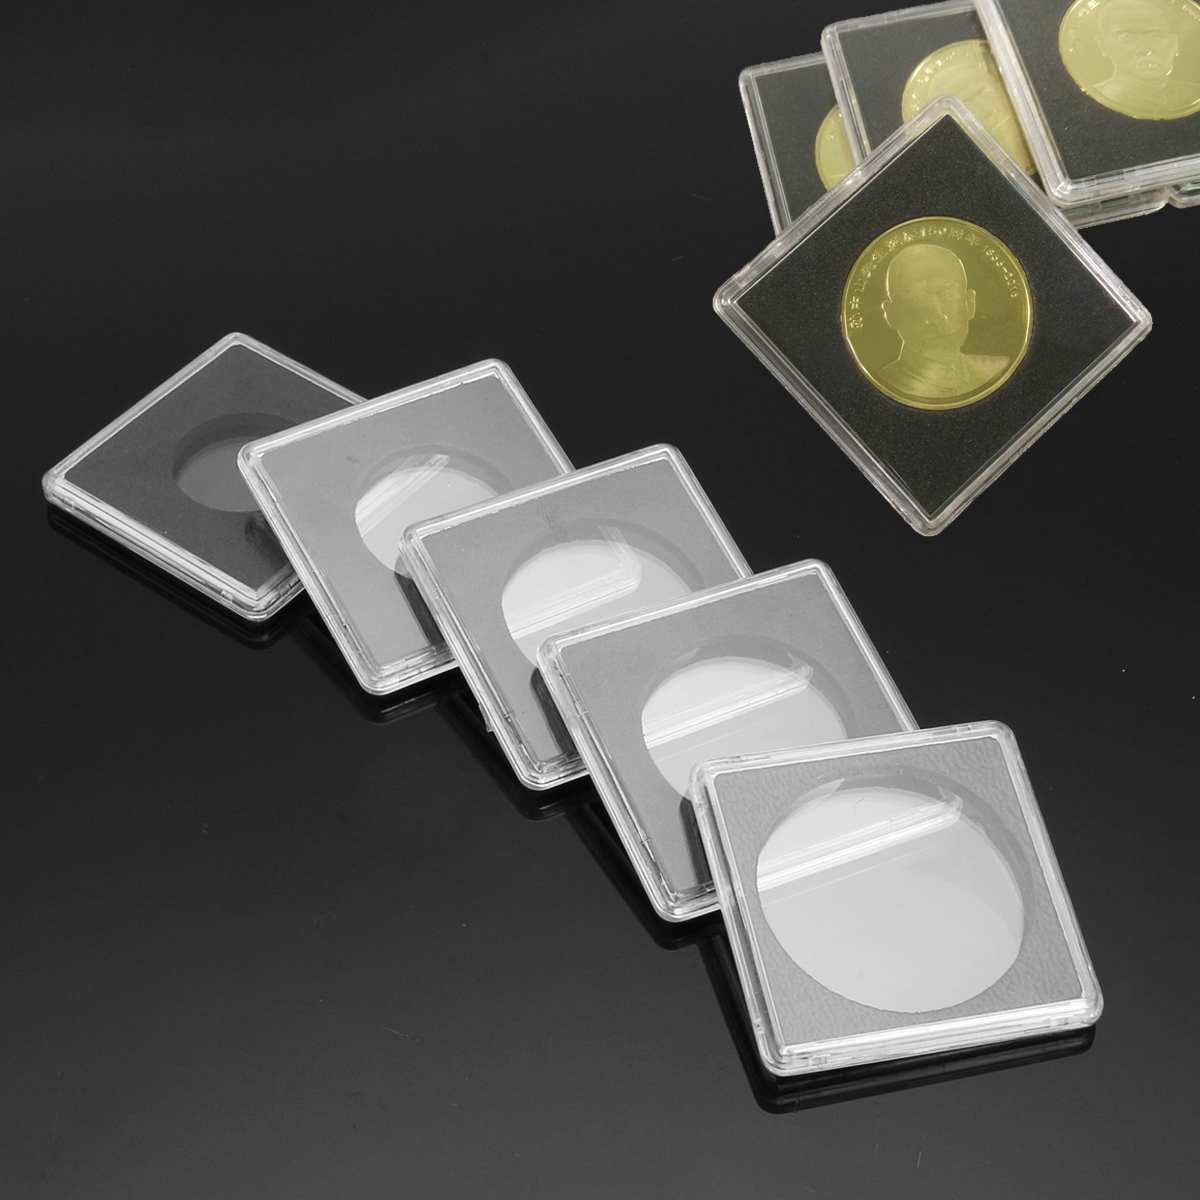 10PCS Plastic Square Coin Holder Capsules Container Coin Transparent Gaine Small Round Coin Collection Boxes Display 24mm-40mm